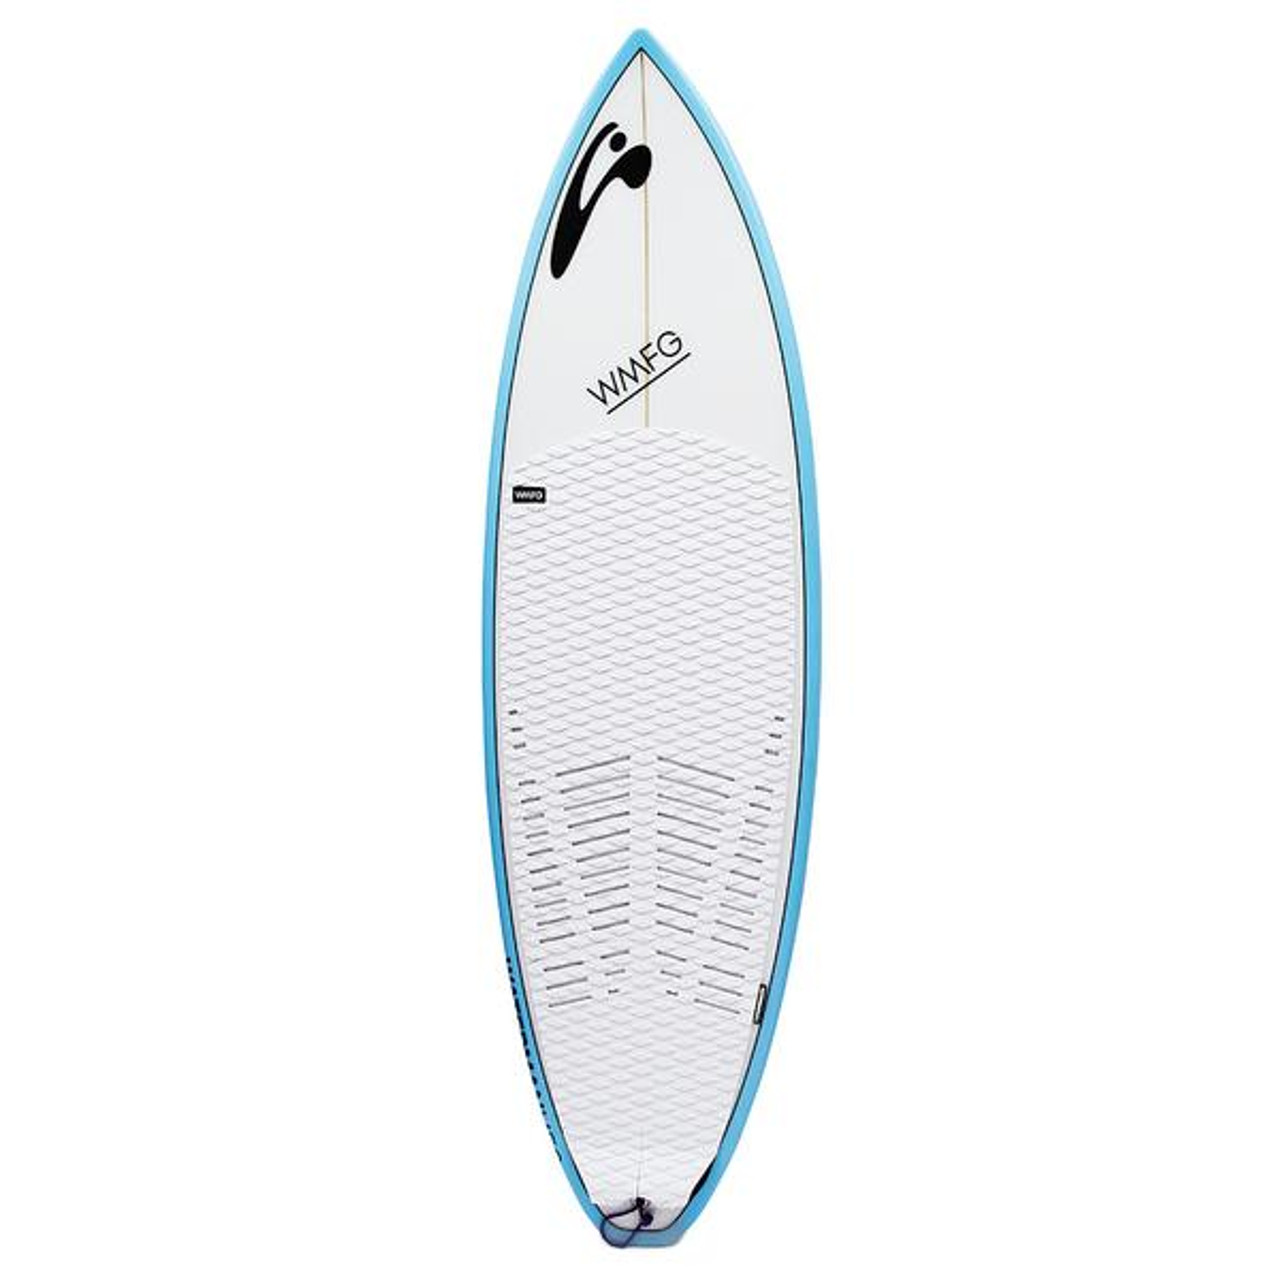 WMFG TRACTION: Six Pack Kiteboard Deck Pad